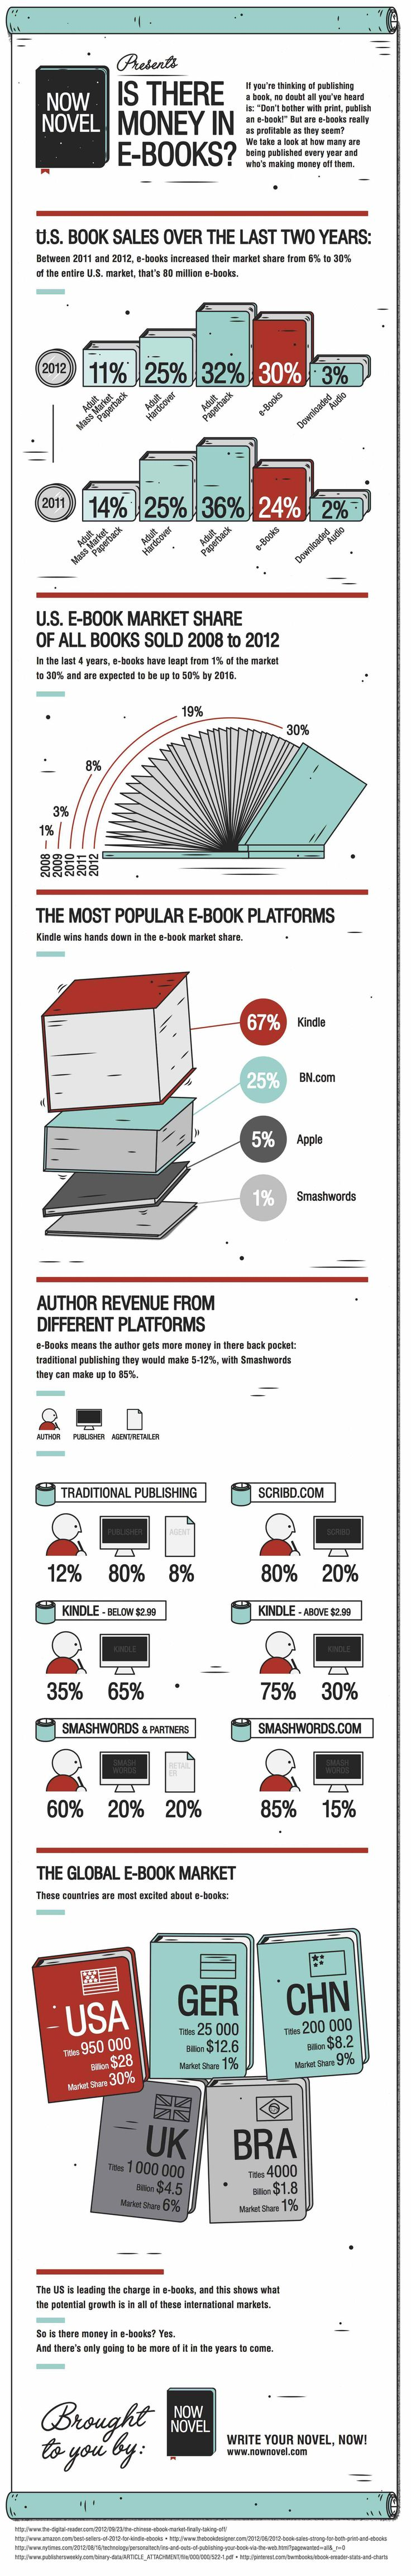 Infographic from Now Novel is a fantastic site committed to help authors go through the process of writing and publishing a book.